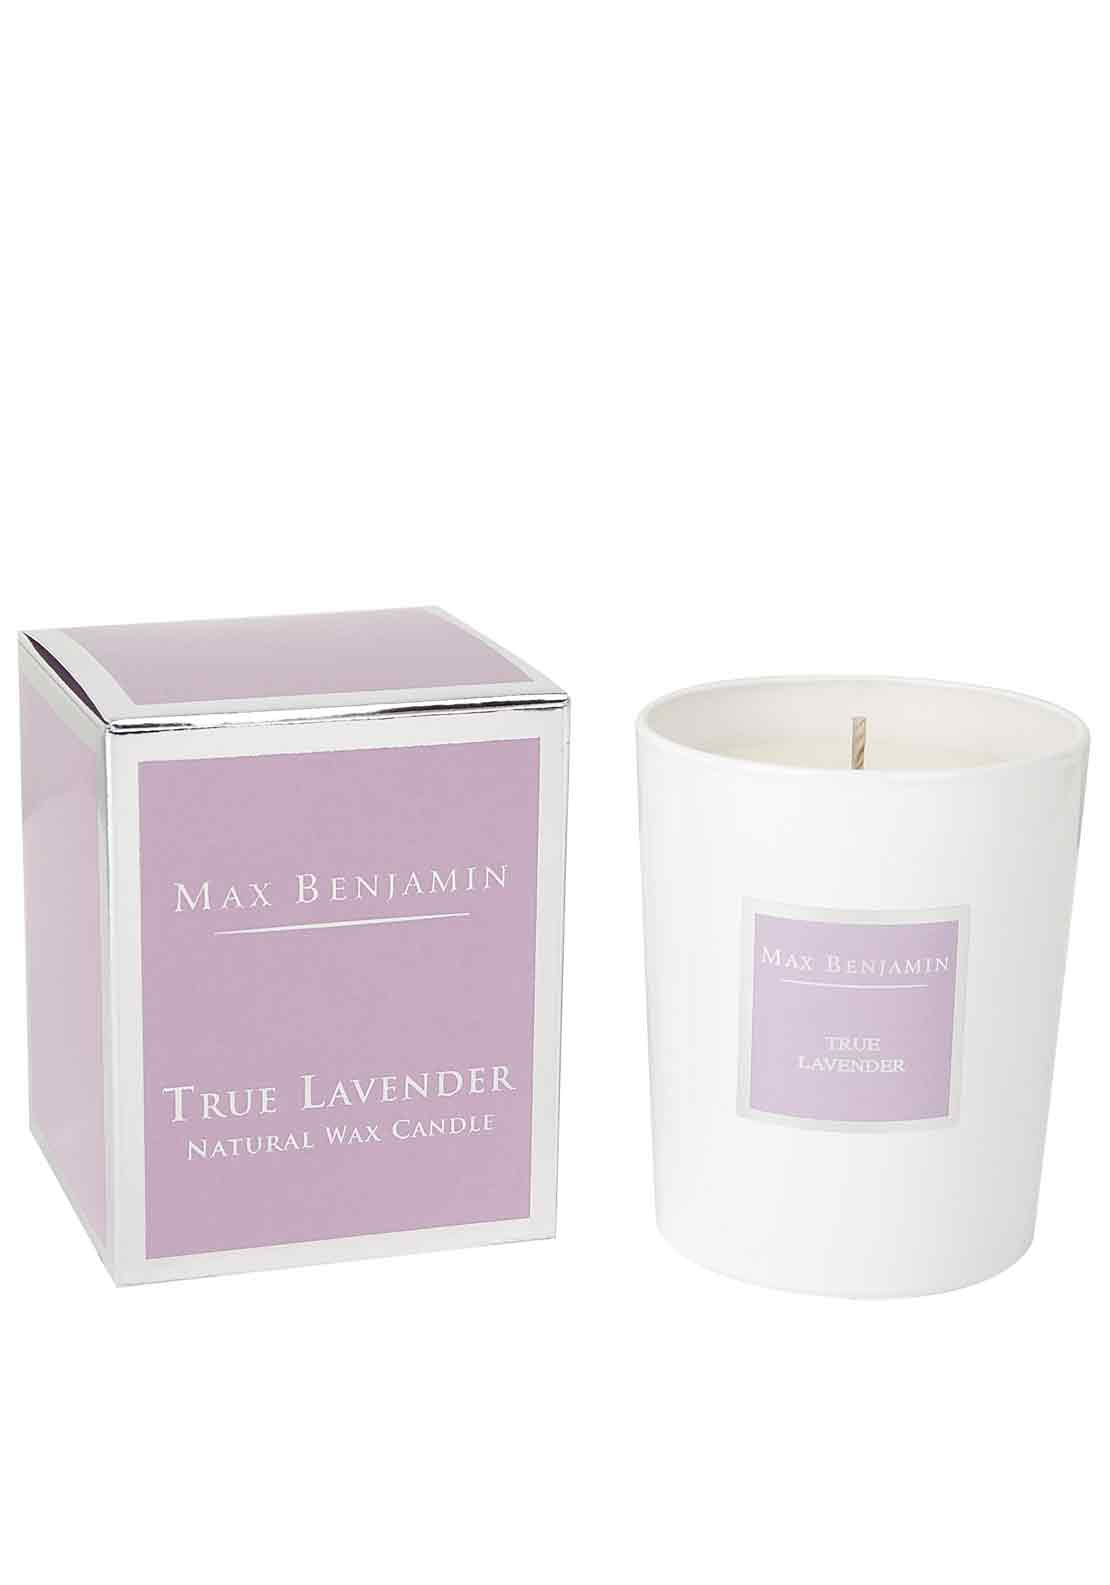 Max Benjamin True Lavender Scented Candle